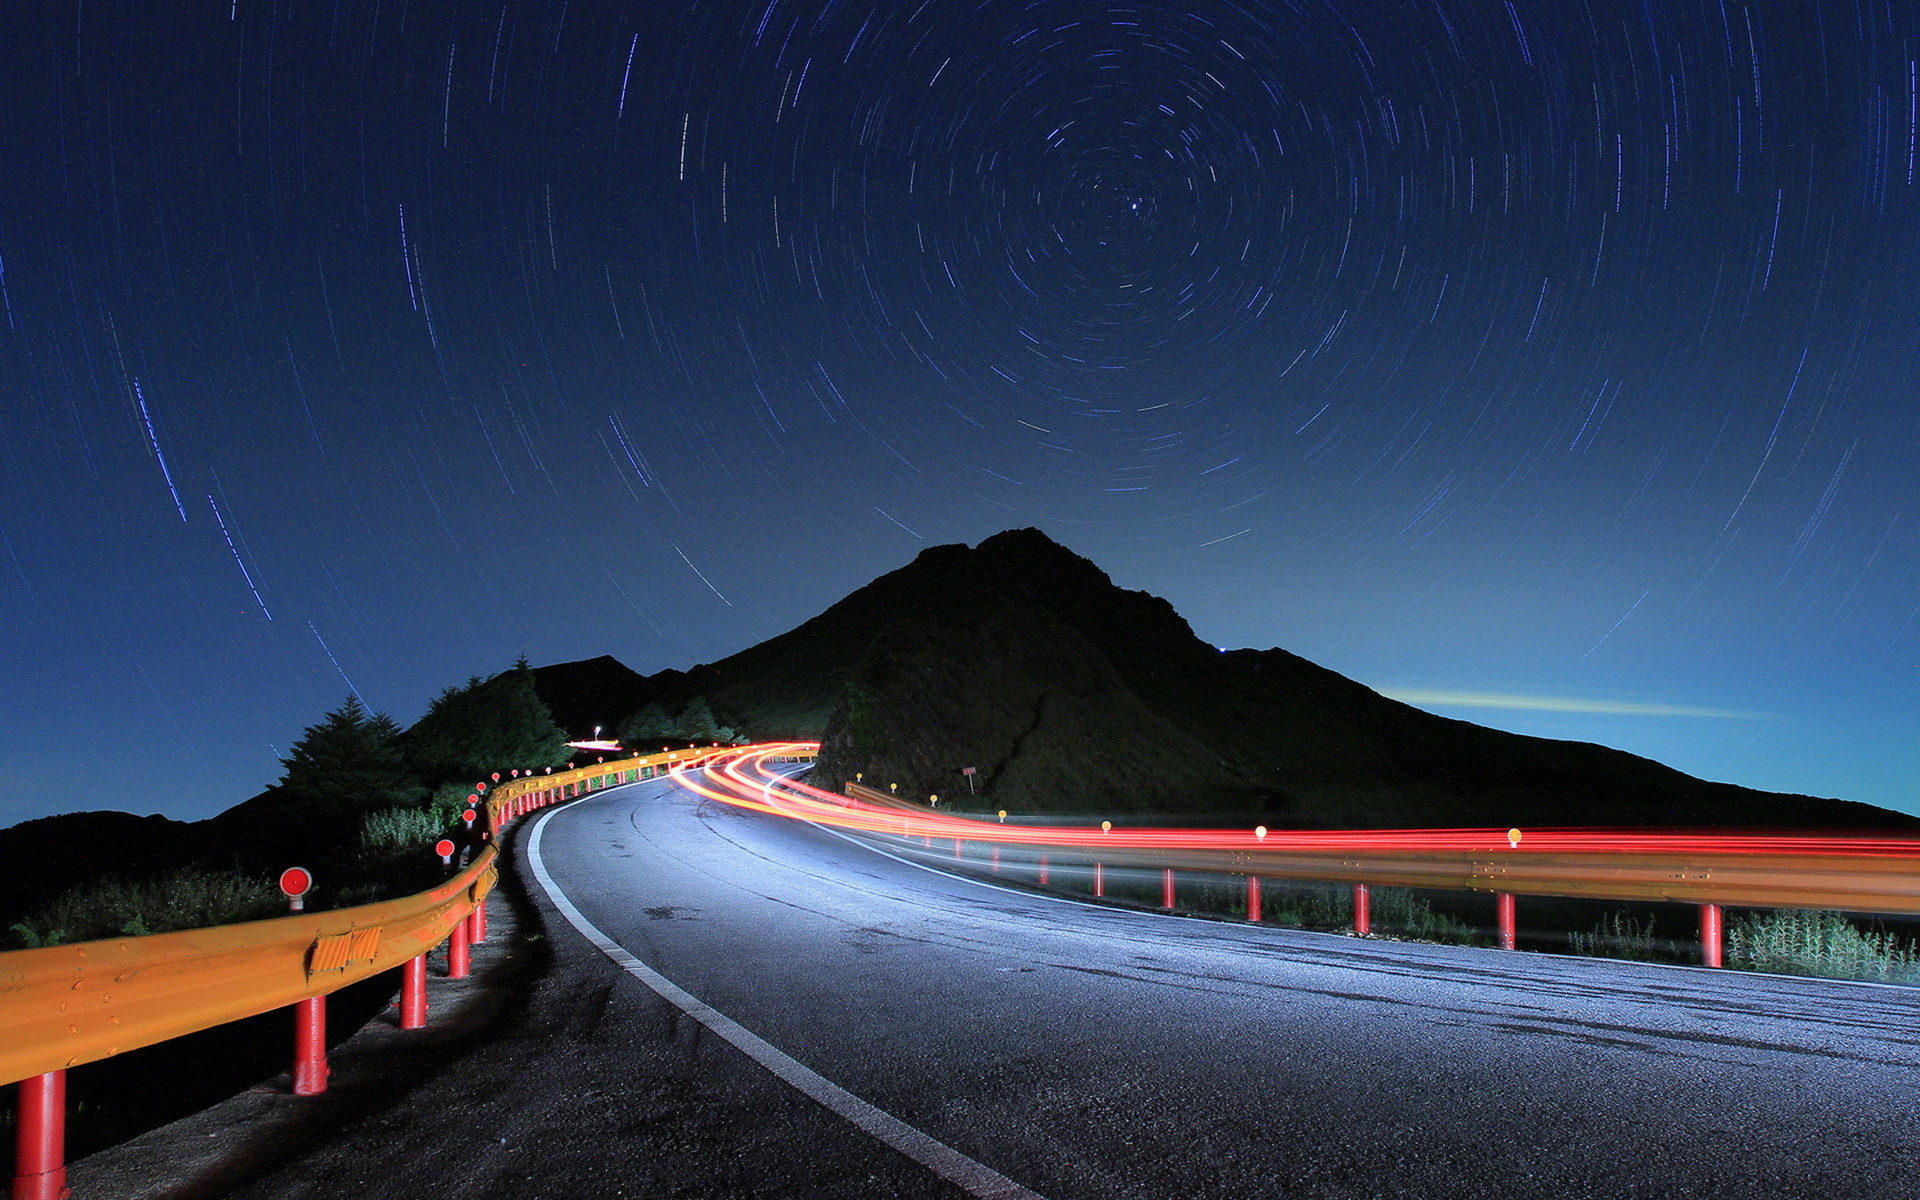 Night Photography, September 15, 2015   Pics PC Gallery, 0.8 Mb